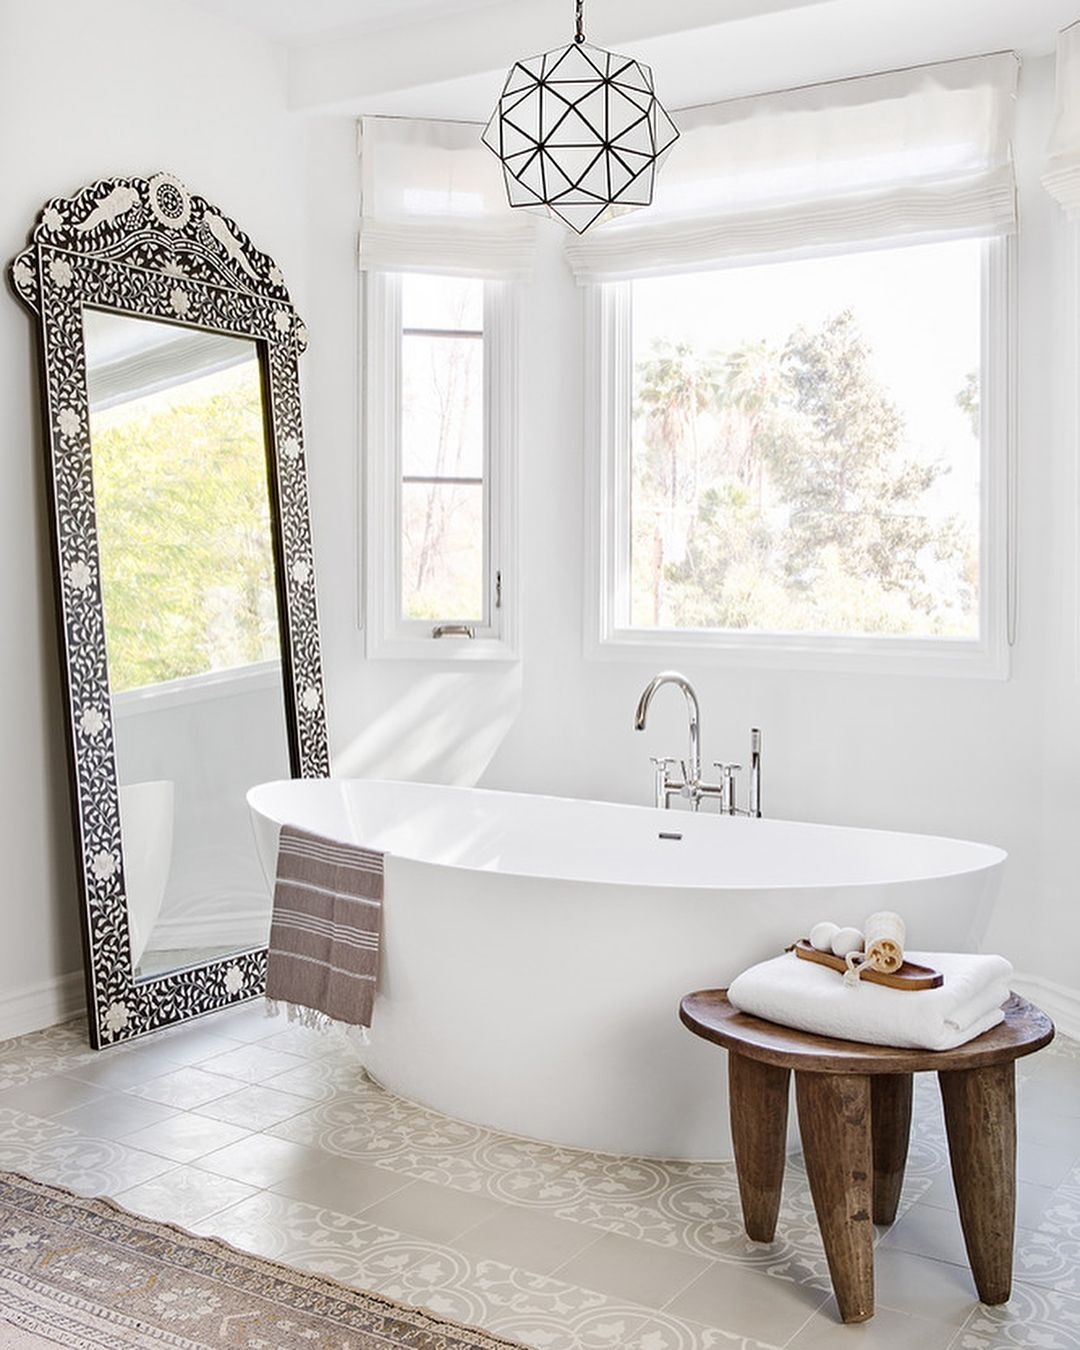 Domino On Instagram Two Words Dream Bathroom Really Do You Have Any Other Word Spanish Style Bathrooms Mediterranean Style Homes Mediterranean Home Decor